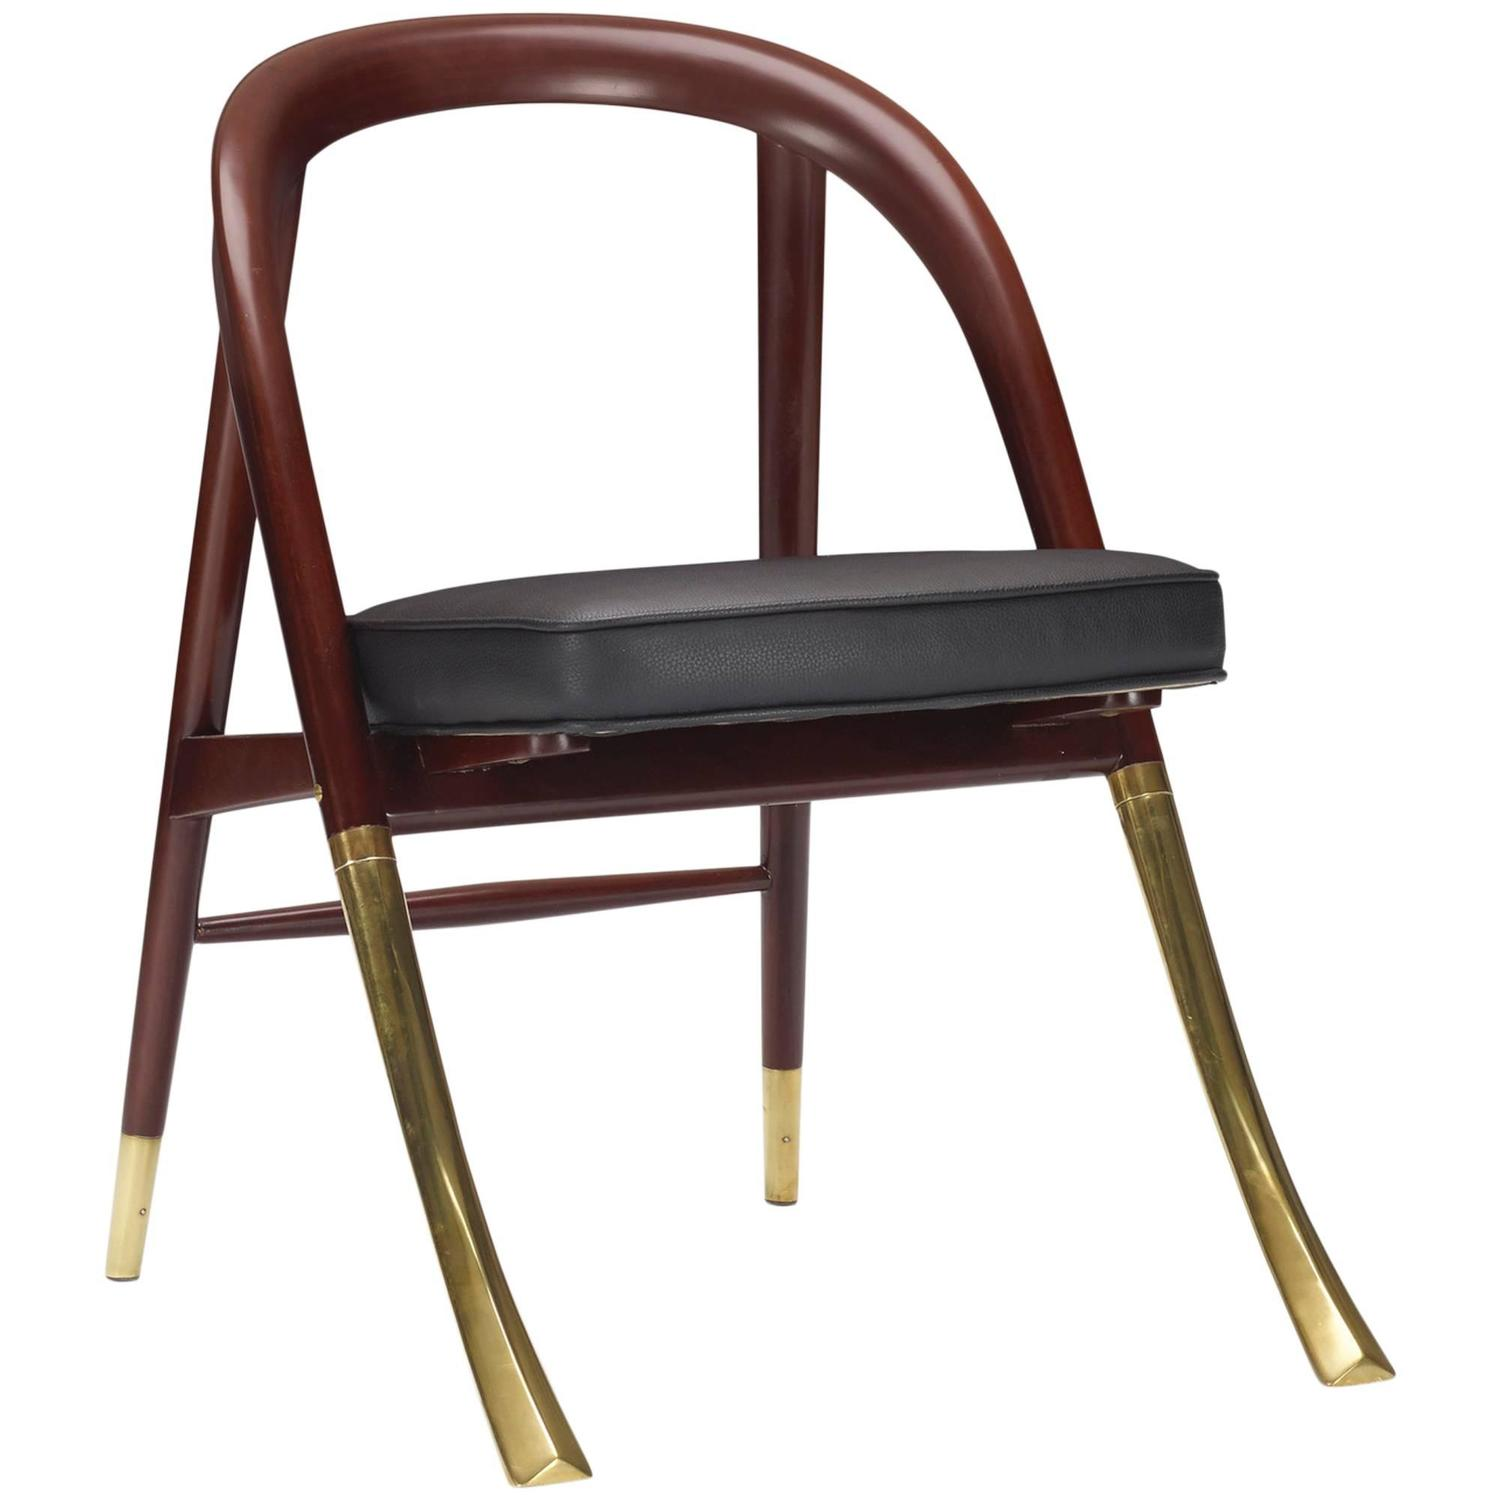 """Model 5481 """"A"""" Chair by Edward Wormley For Sale at 1stdibs"""